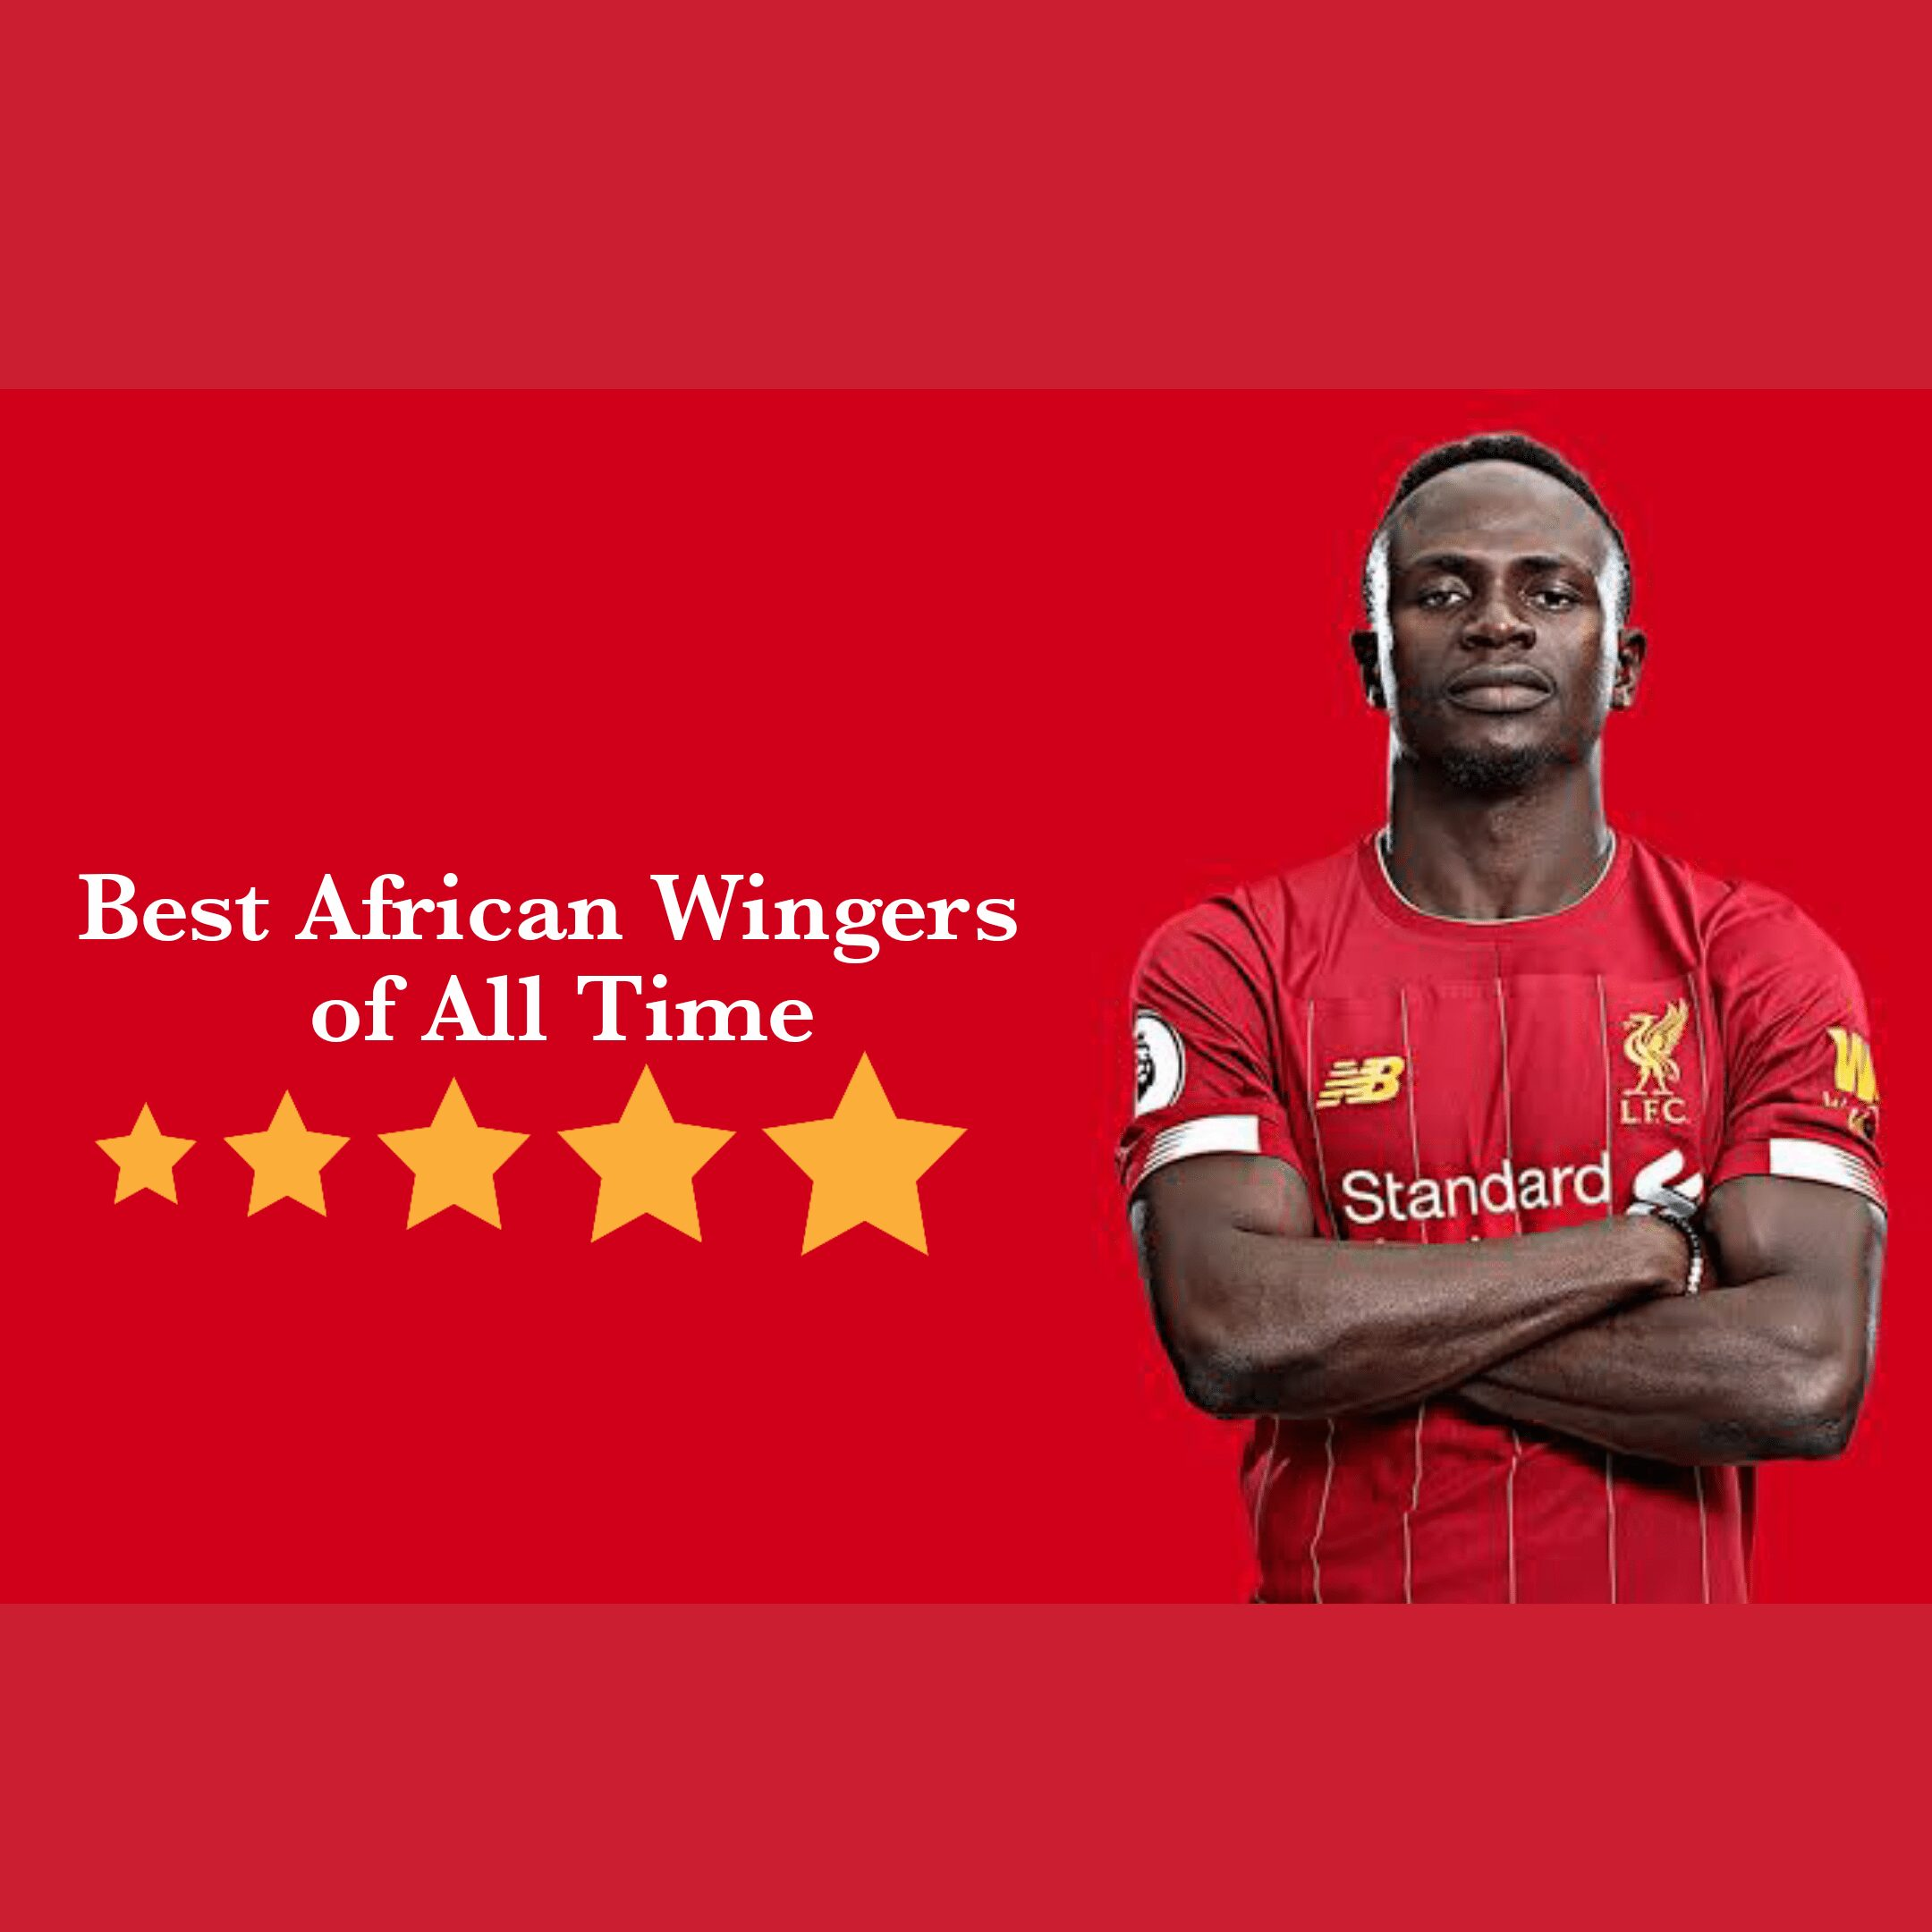 Best African Wingers of all time